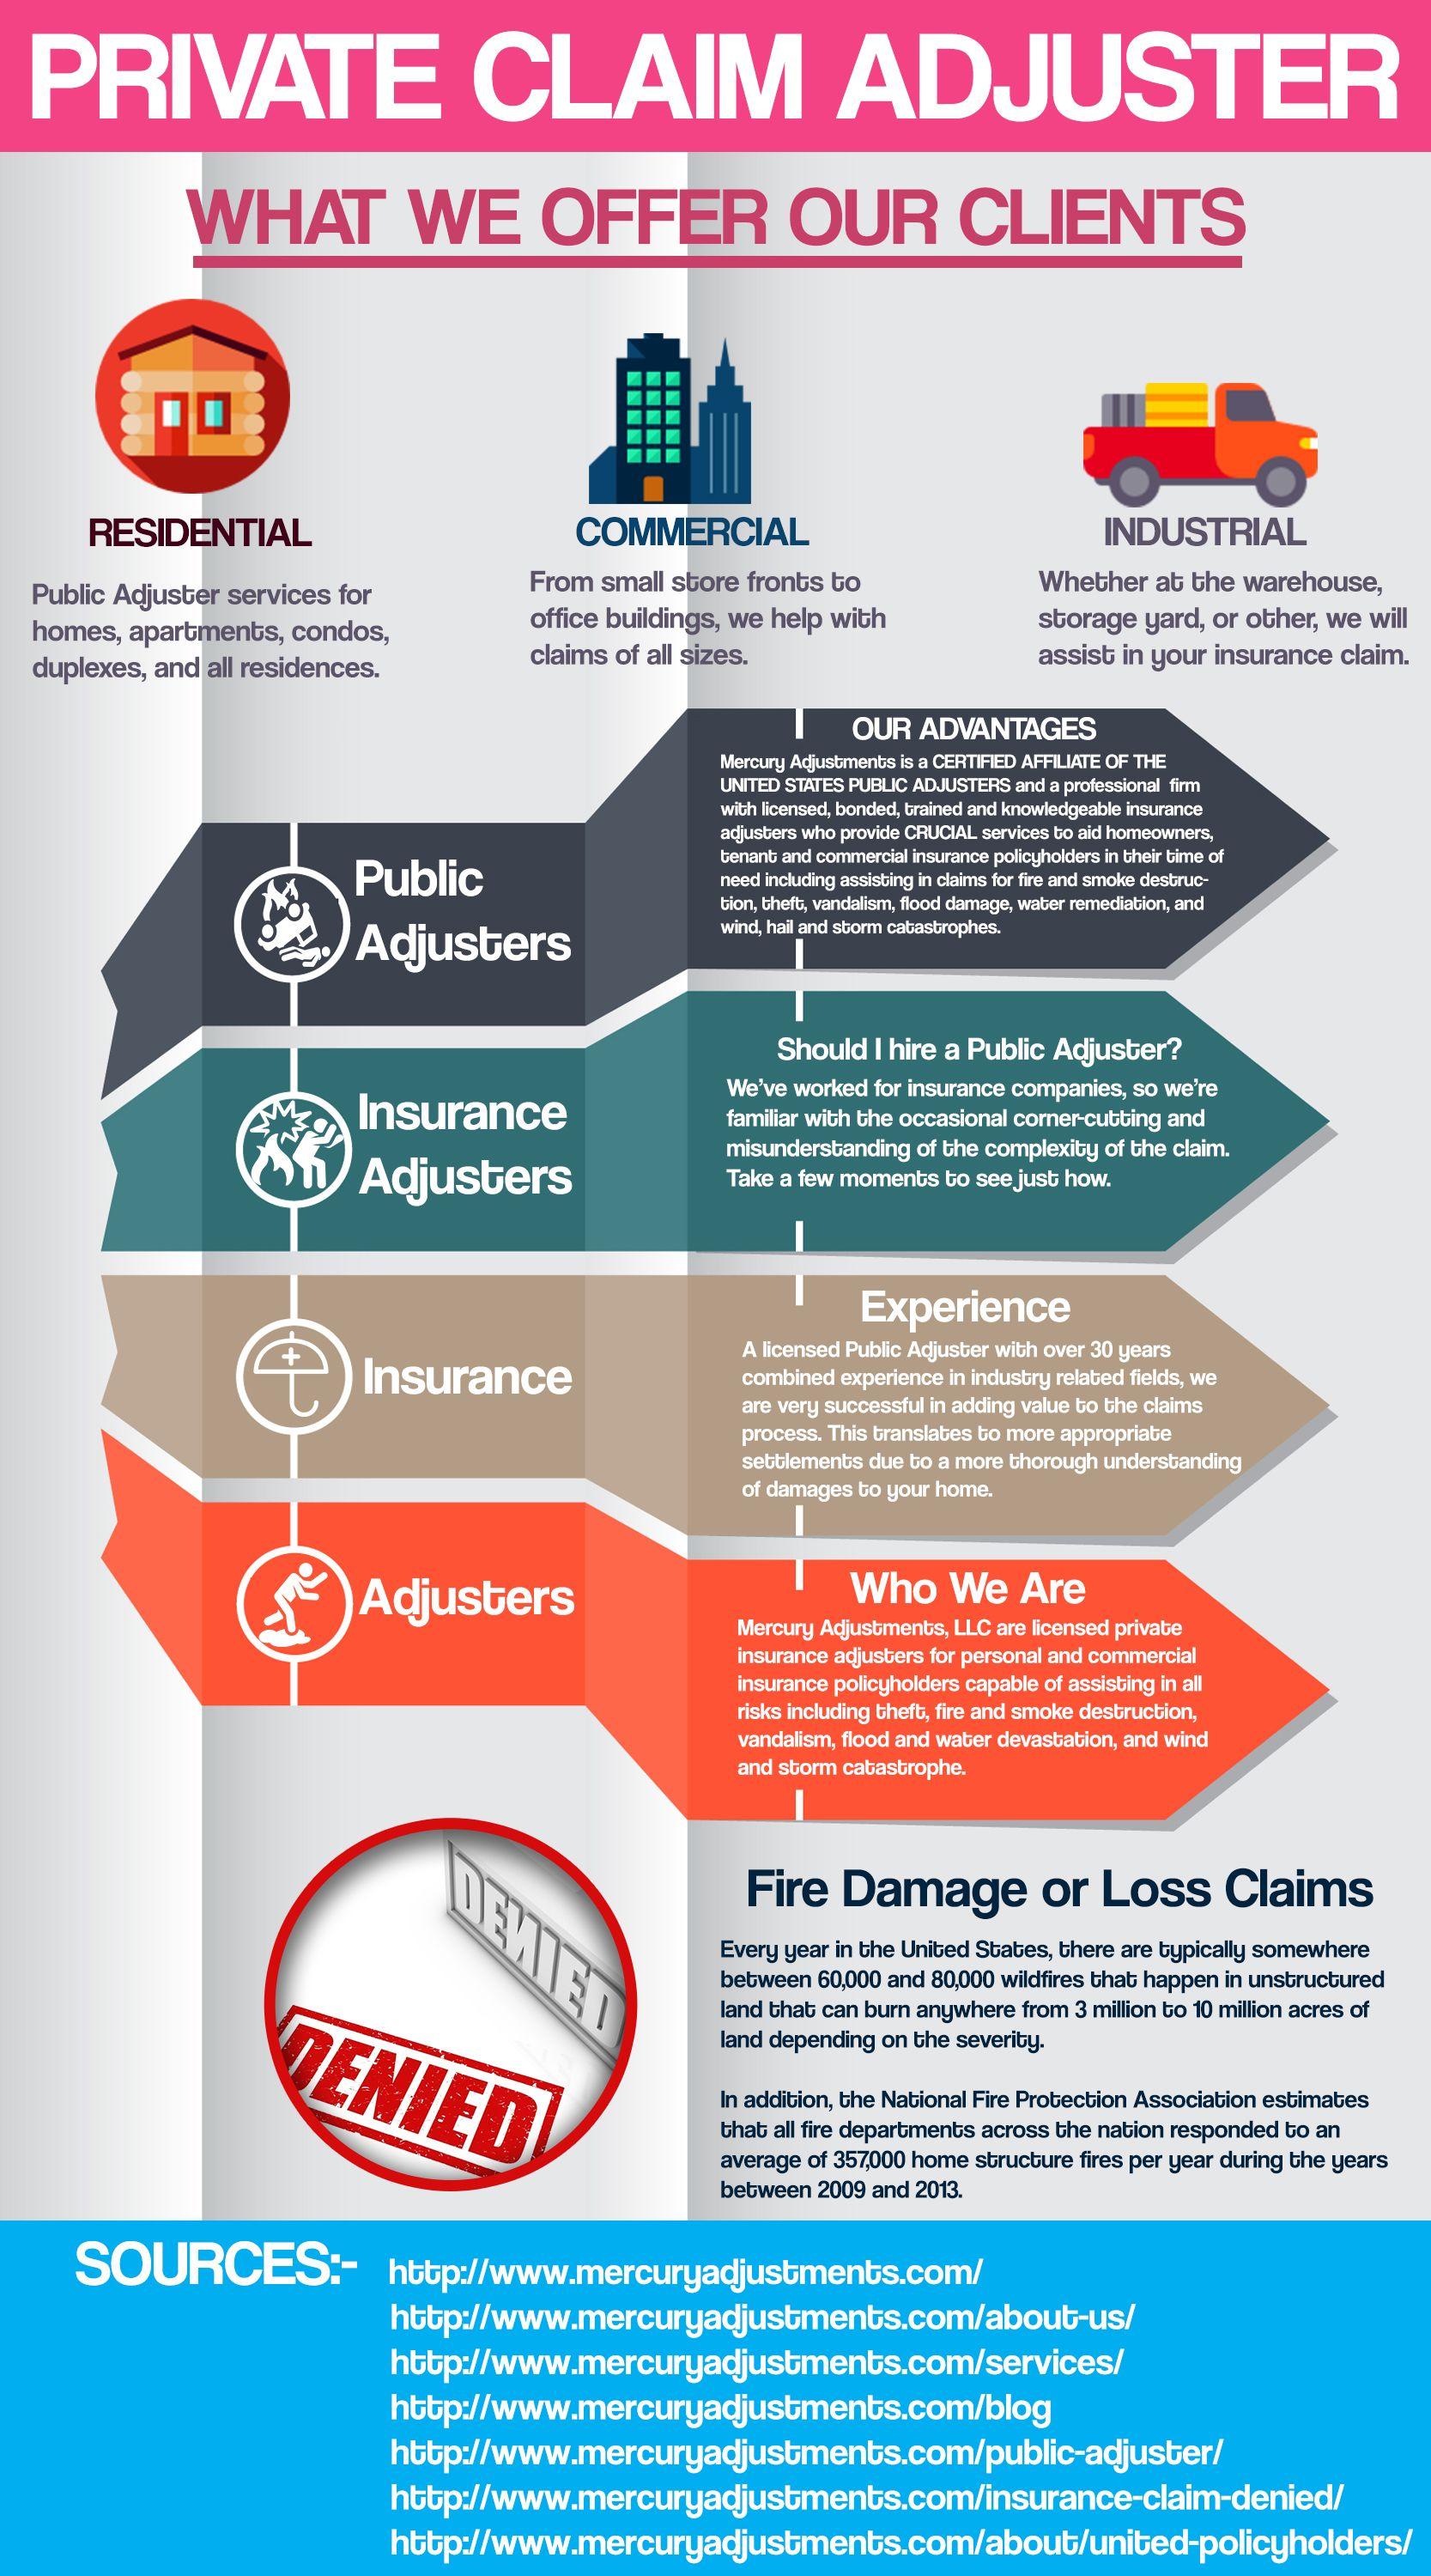 Mercury Adjustments Offer You Licensed Public Insurance Adjusters With Over 30 Years Experience We Are Very Successful To A Public Insurance Company Insurance